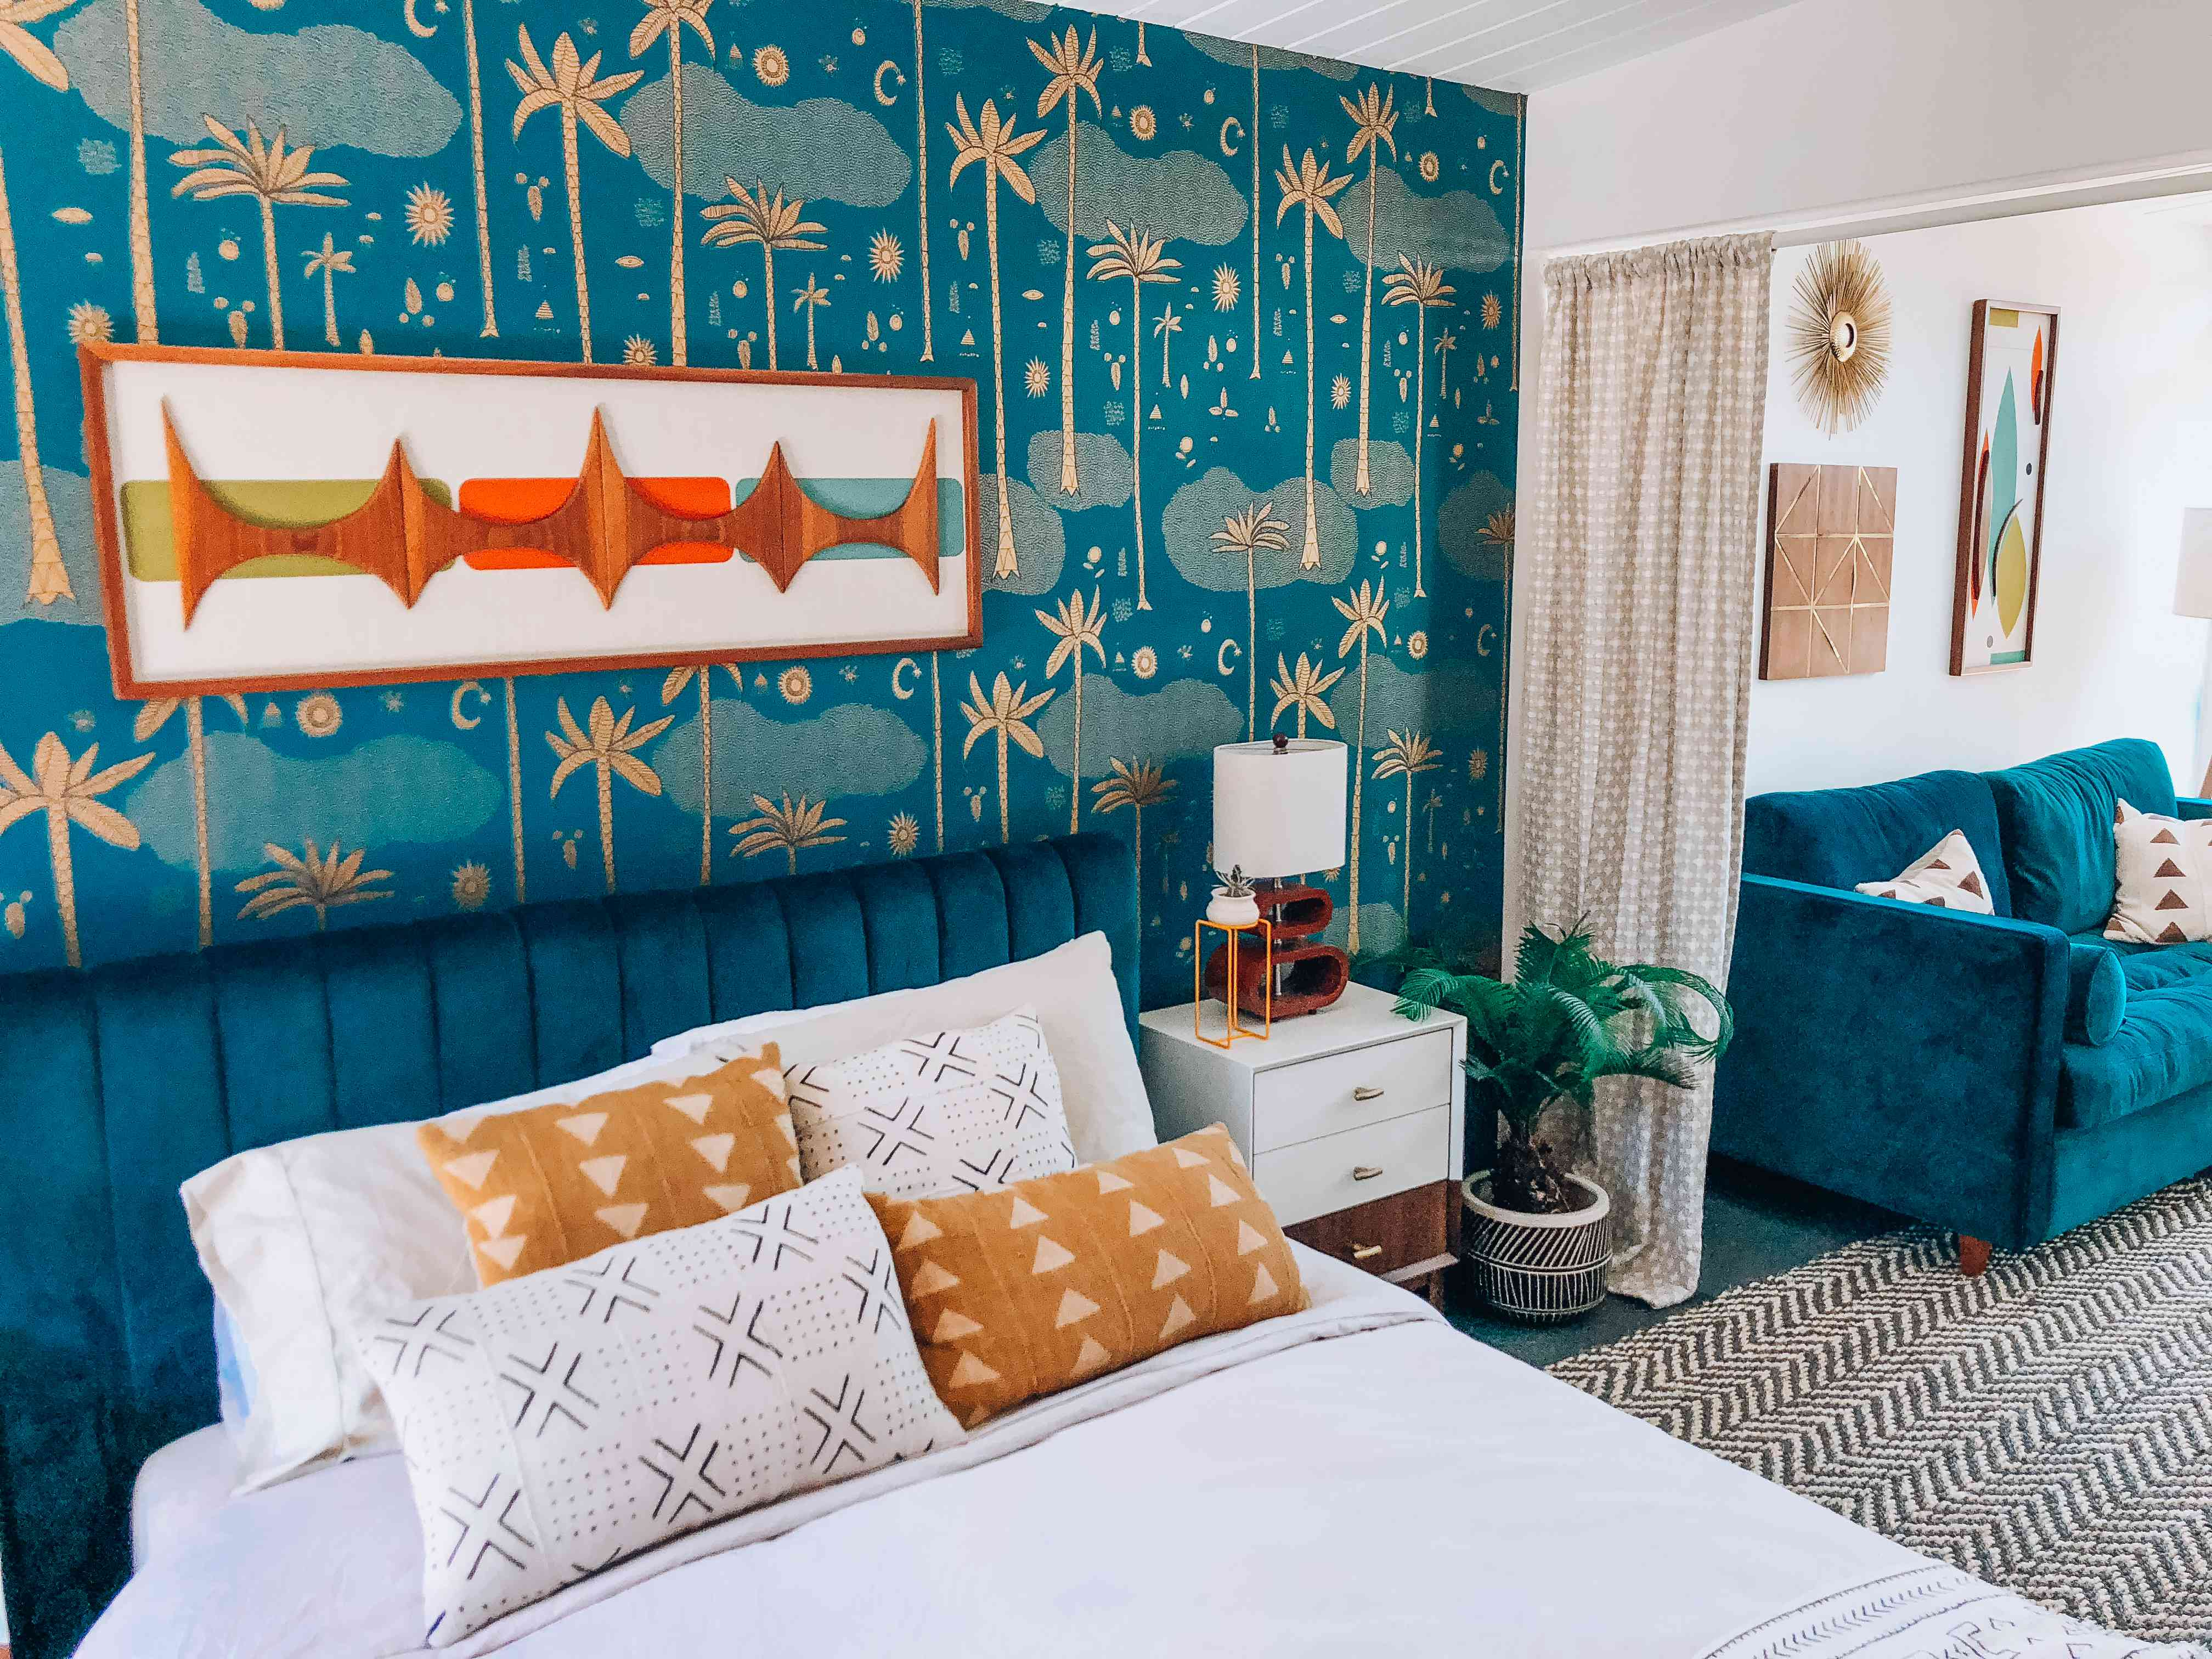 Brown and Turquoise eclectic bedroom